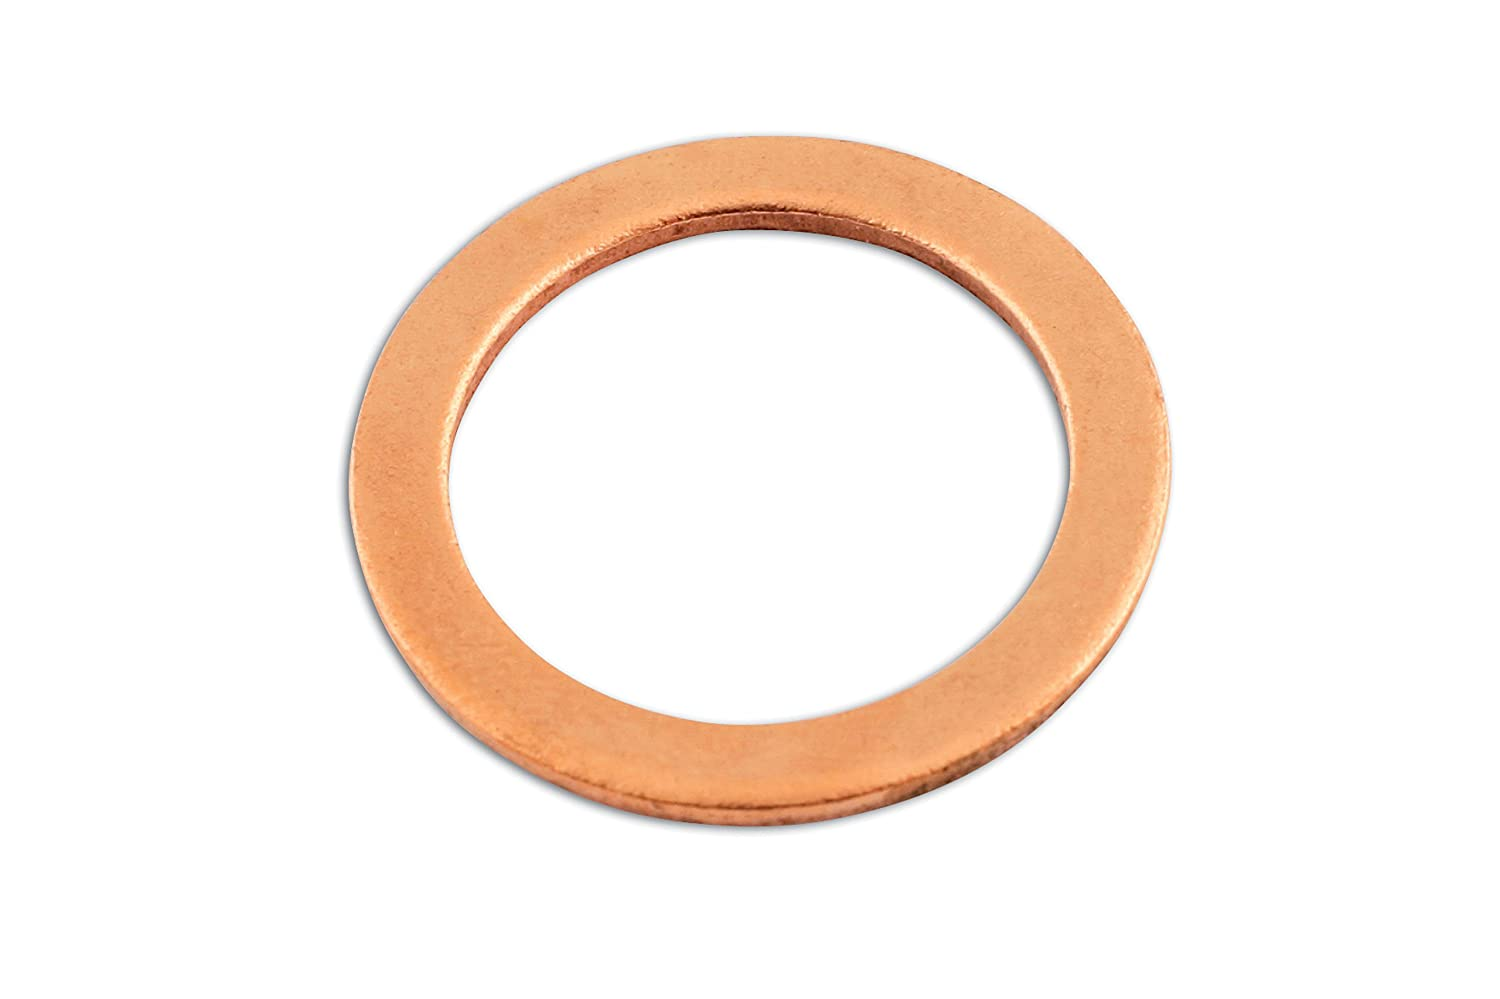 Connect 31839 M18 x 24 x 1.5mm Copper Sealing Washer The Tool Connection Ltd.